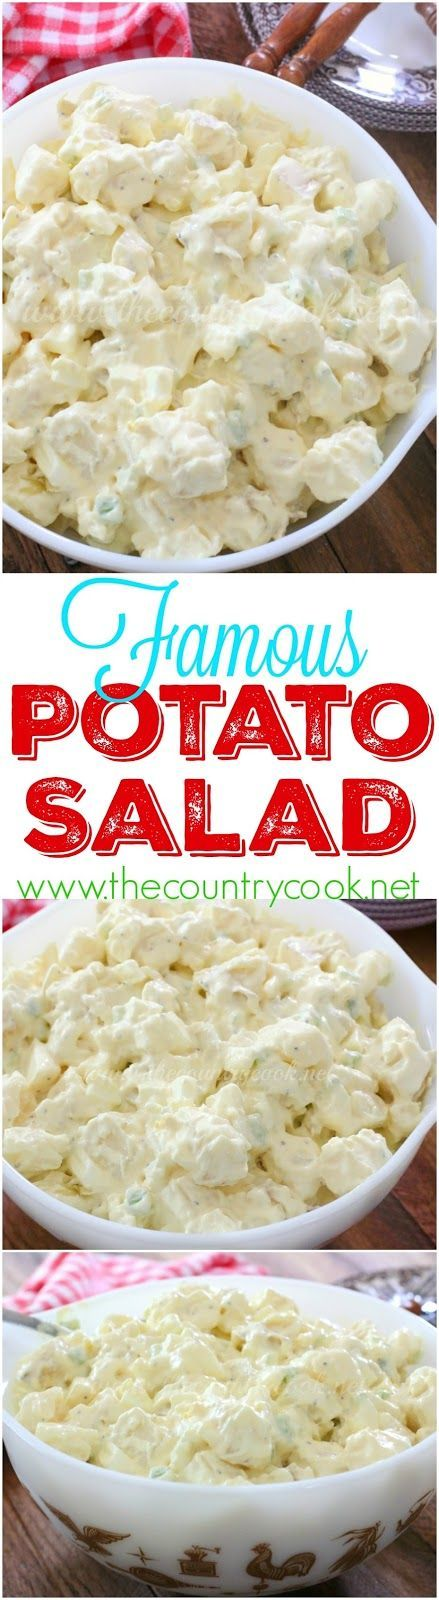 Famous Potato Salad recipe from The Country Cook. This potato salad made me famous with my family and friends. Everyone always wants the recipe and it's the first thing to go at any cookout! So good. Creamy deliciousness!